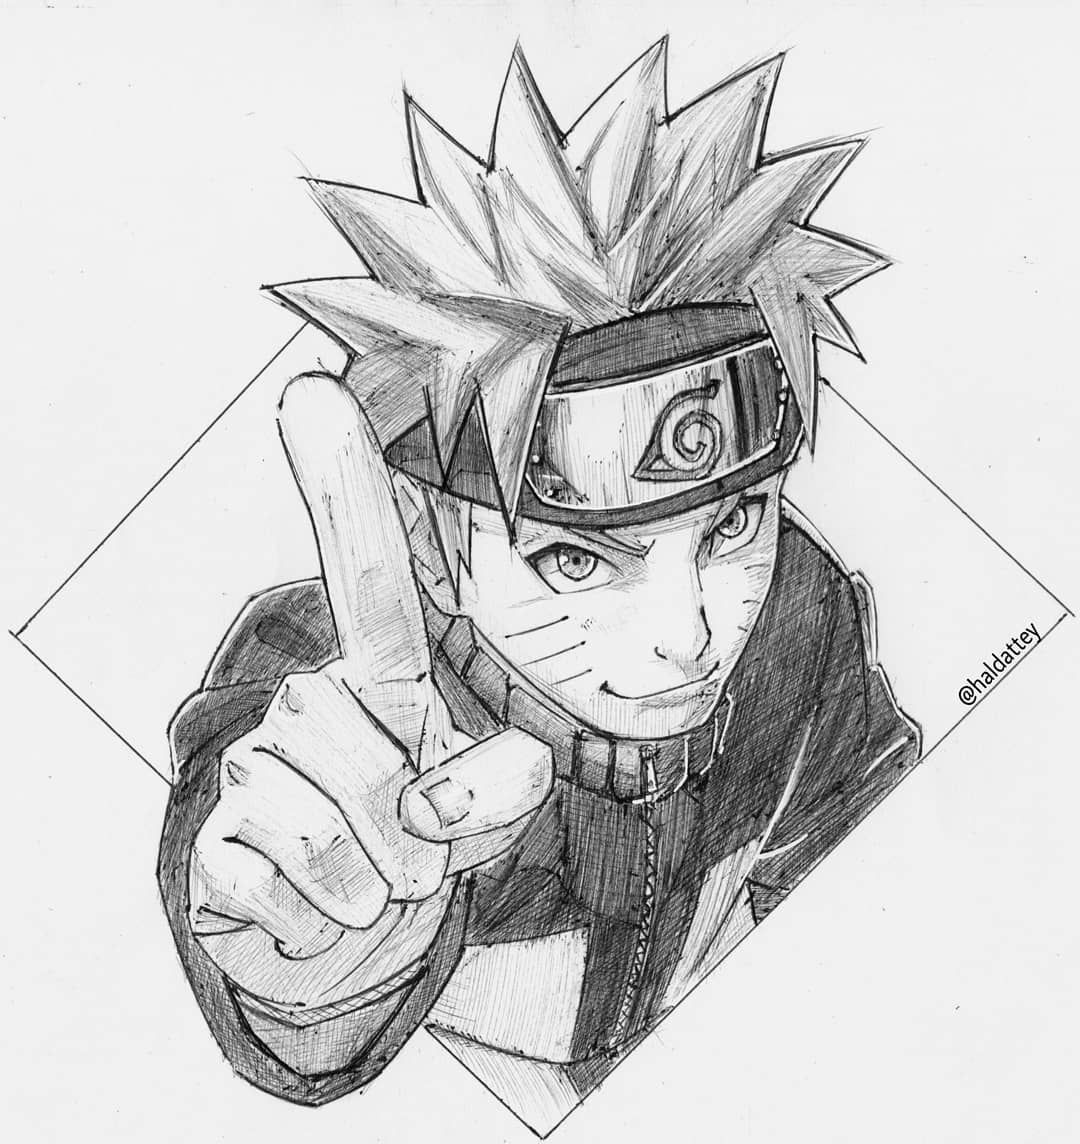 Drew Our Boy Naruto For My Sister S Birthday I Like The Highlights I Did With The White Pen Finally L Naruto Drawings Anime Character Drawing Naruto Sketch